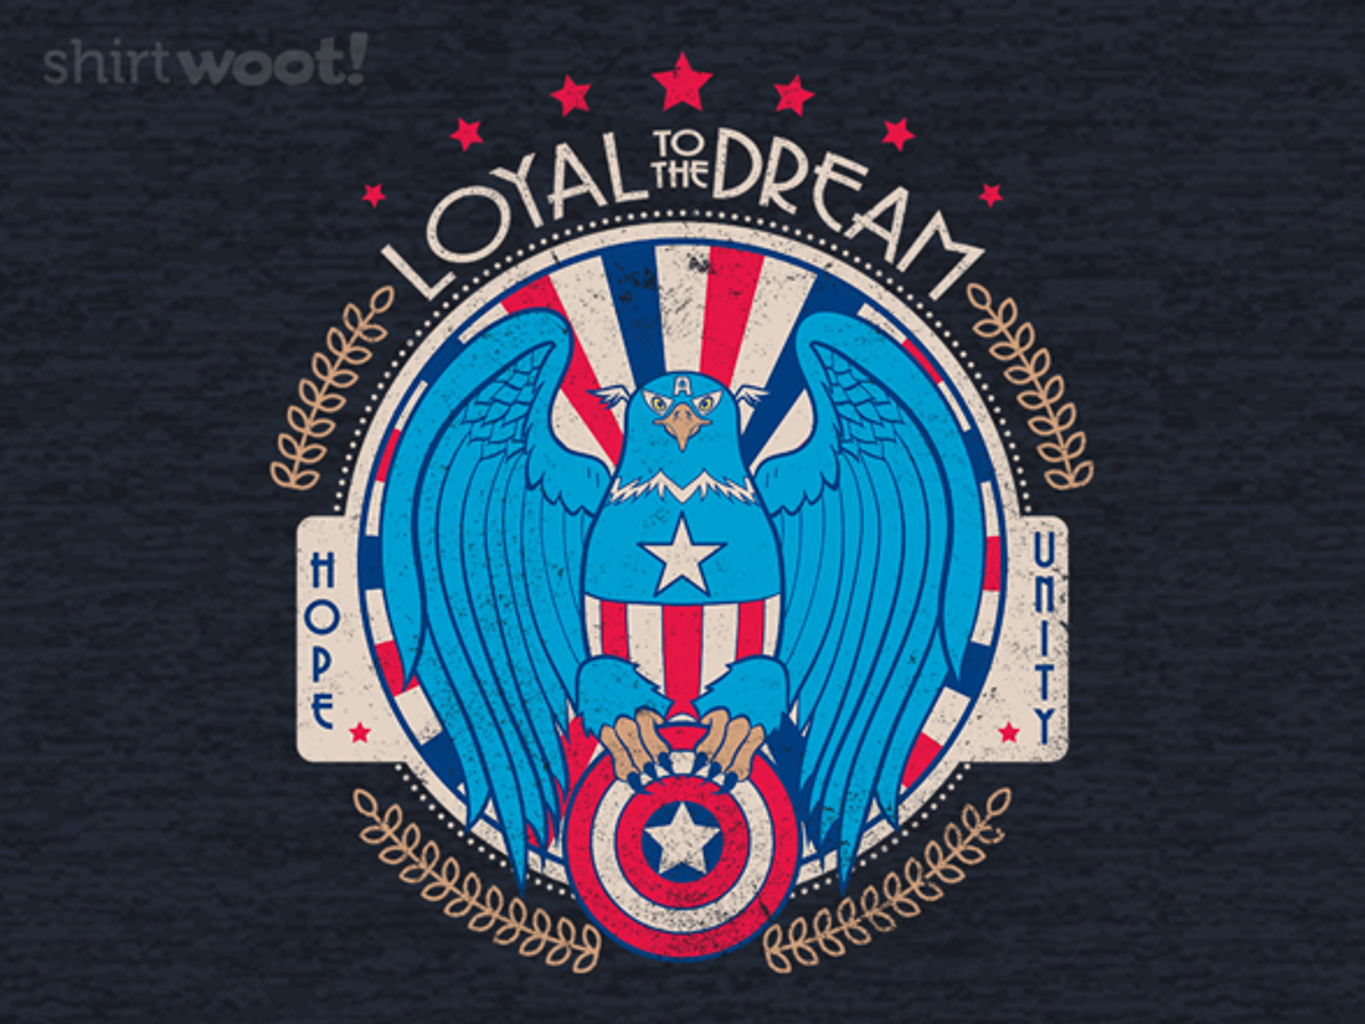 Woot!: Loyalty to the Dream